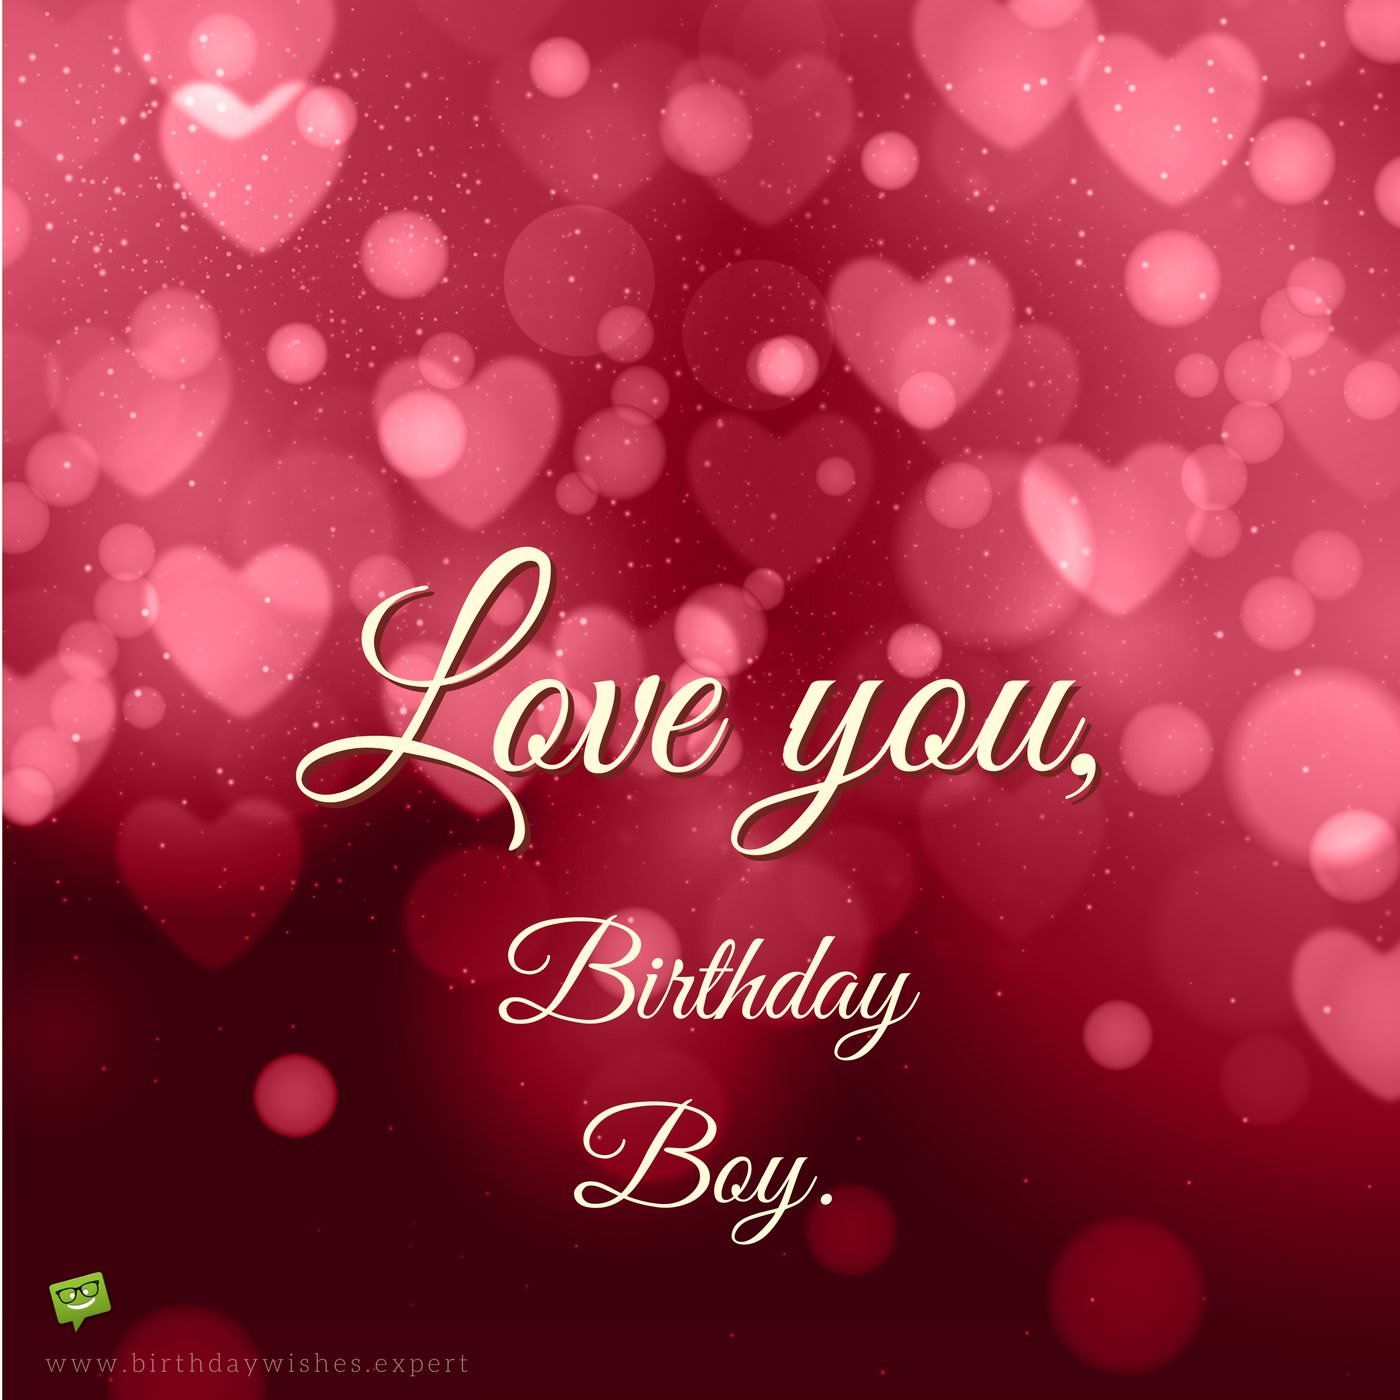 birthday card messages for your boyfriend ; Birthday-wish-for-boyfriend-on-background-with-red-hearts